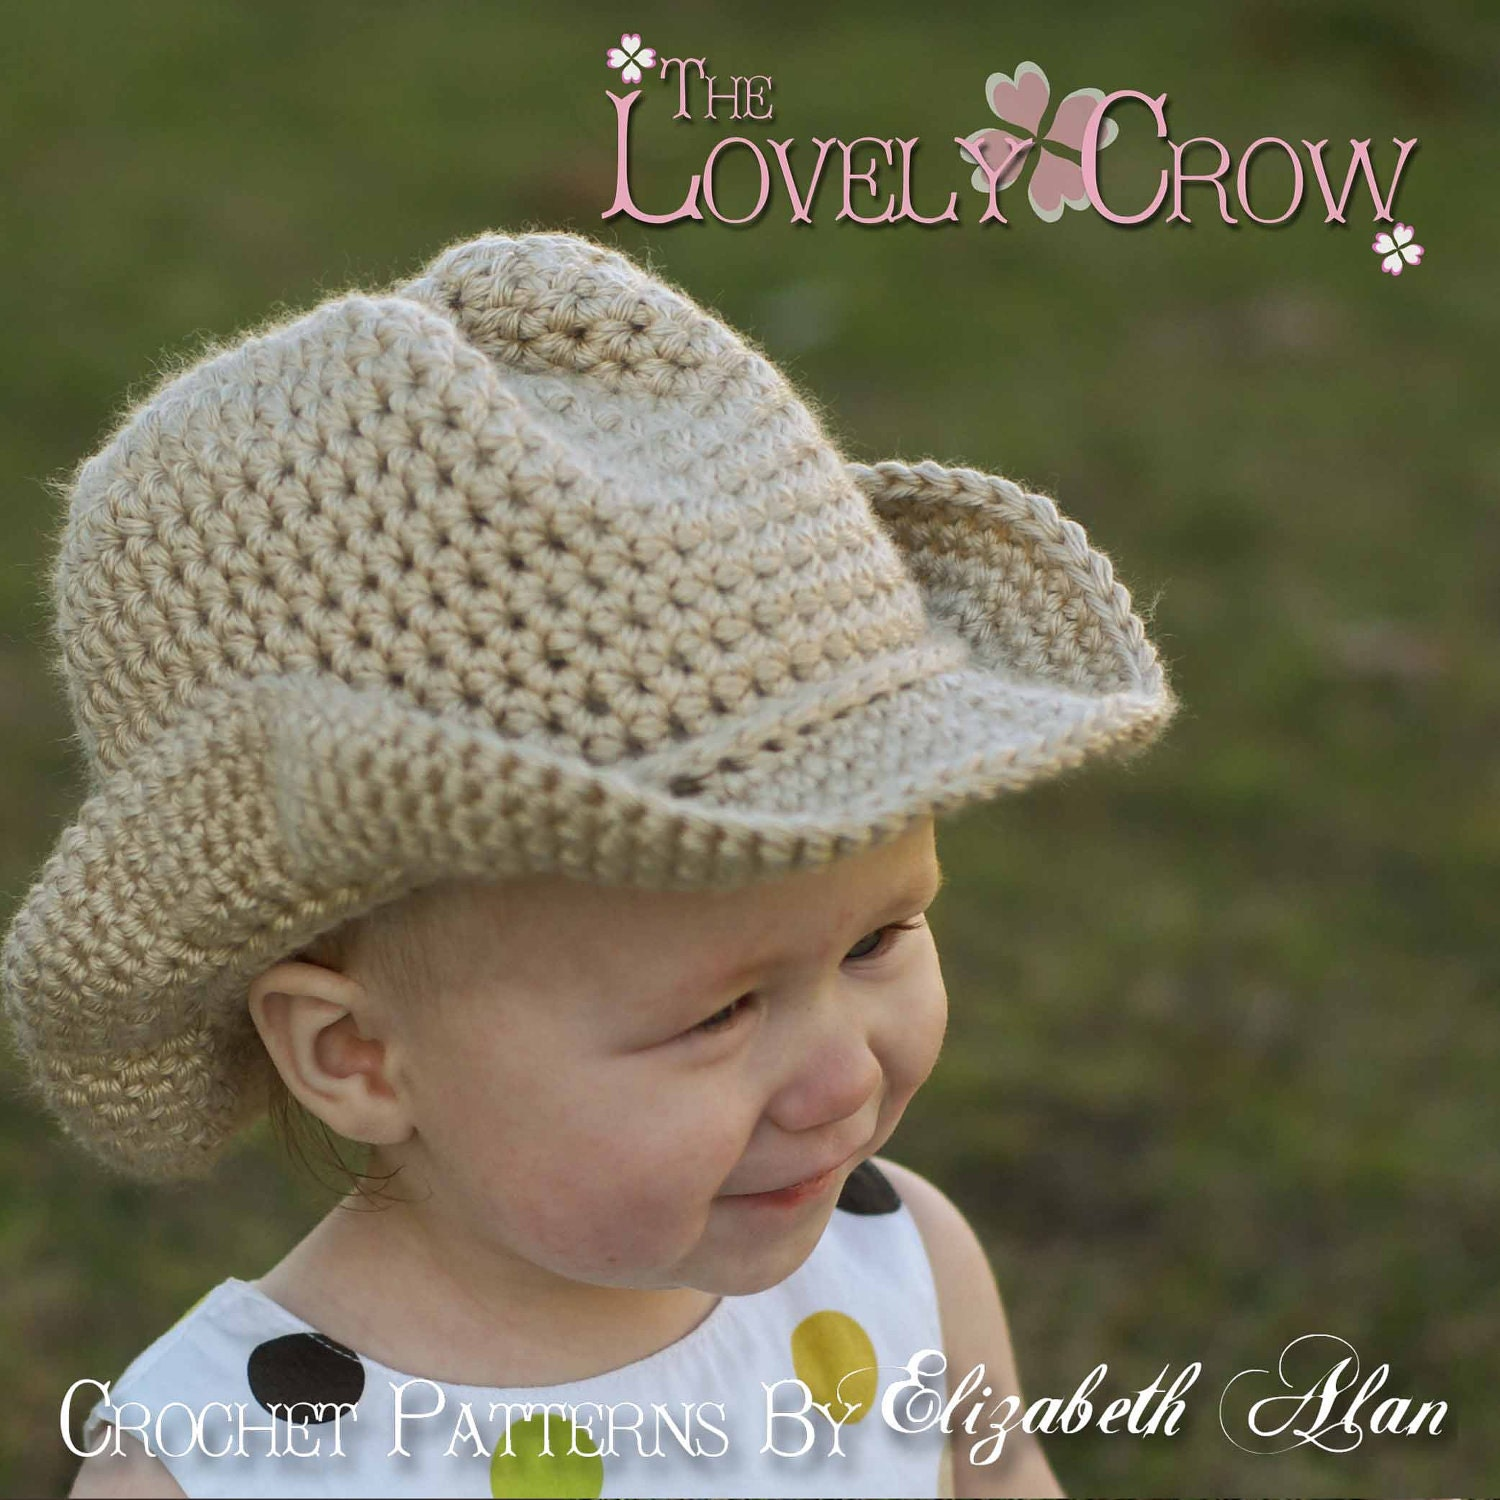 Crochet Patterns Infant Hats : Baby Crochet Pattern Cowboy Hat for BOOT SCOOTN by TheLovelyCrow